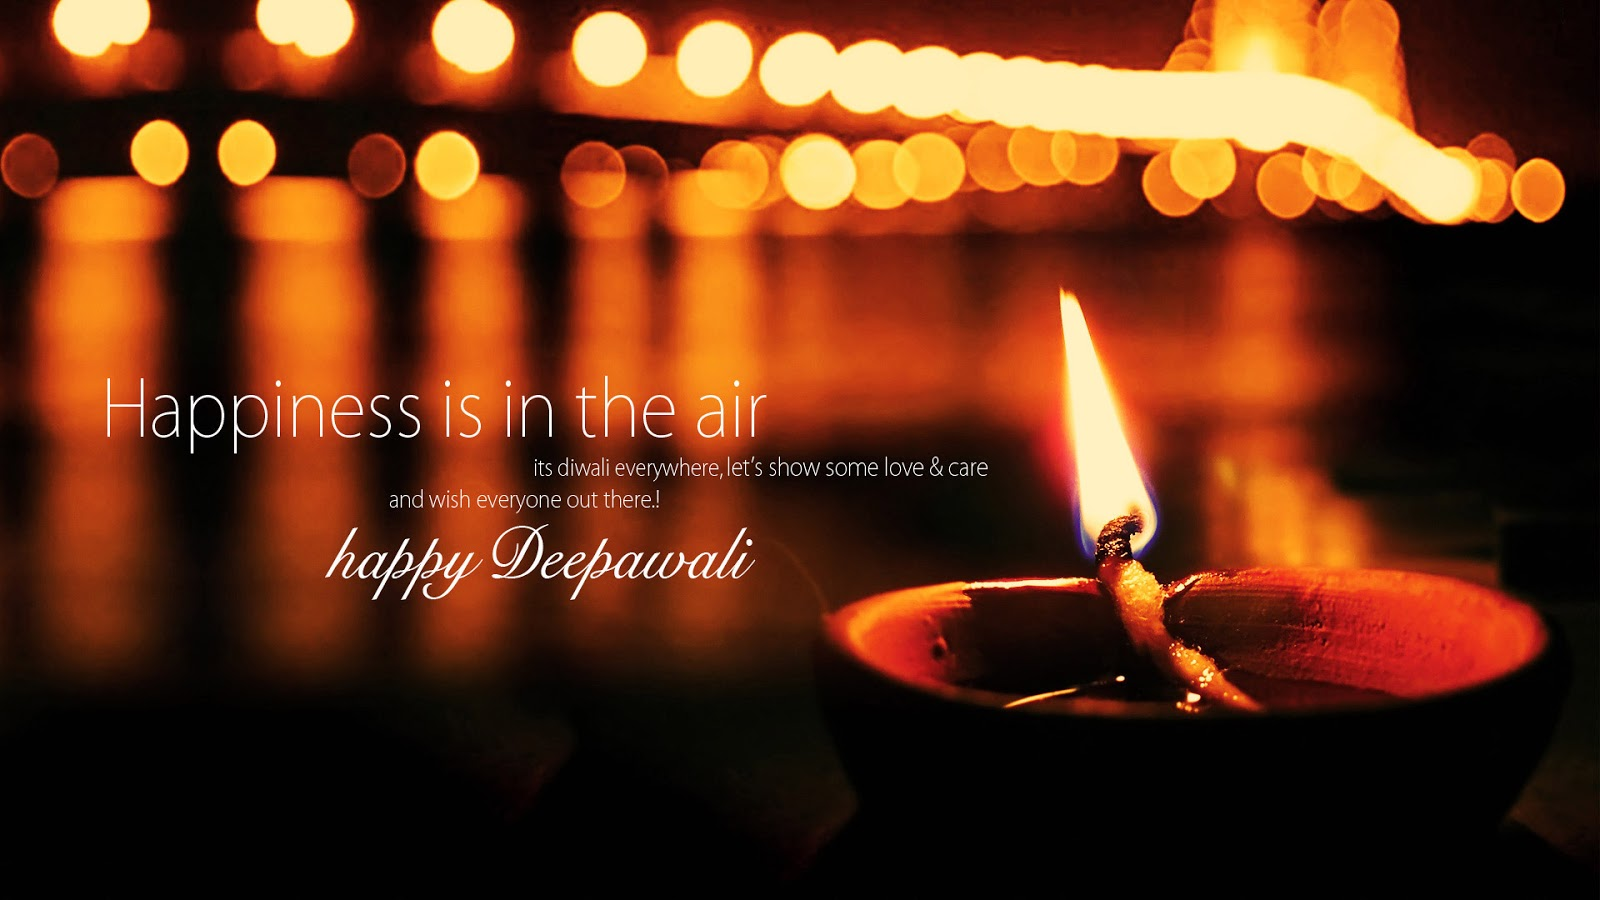 pictures deepavali greetings wallpapers - photo #42